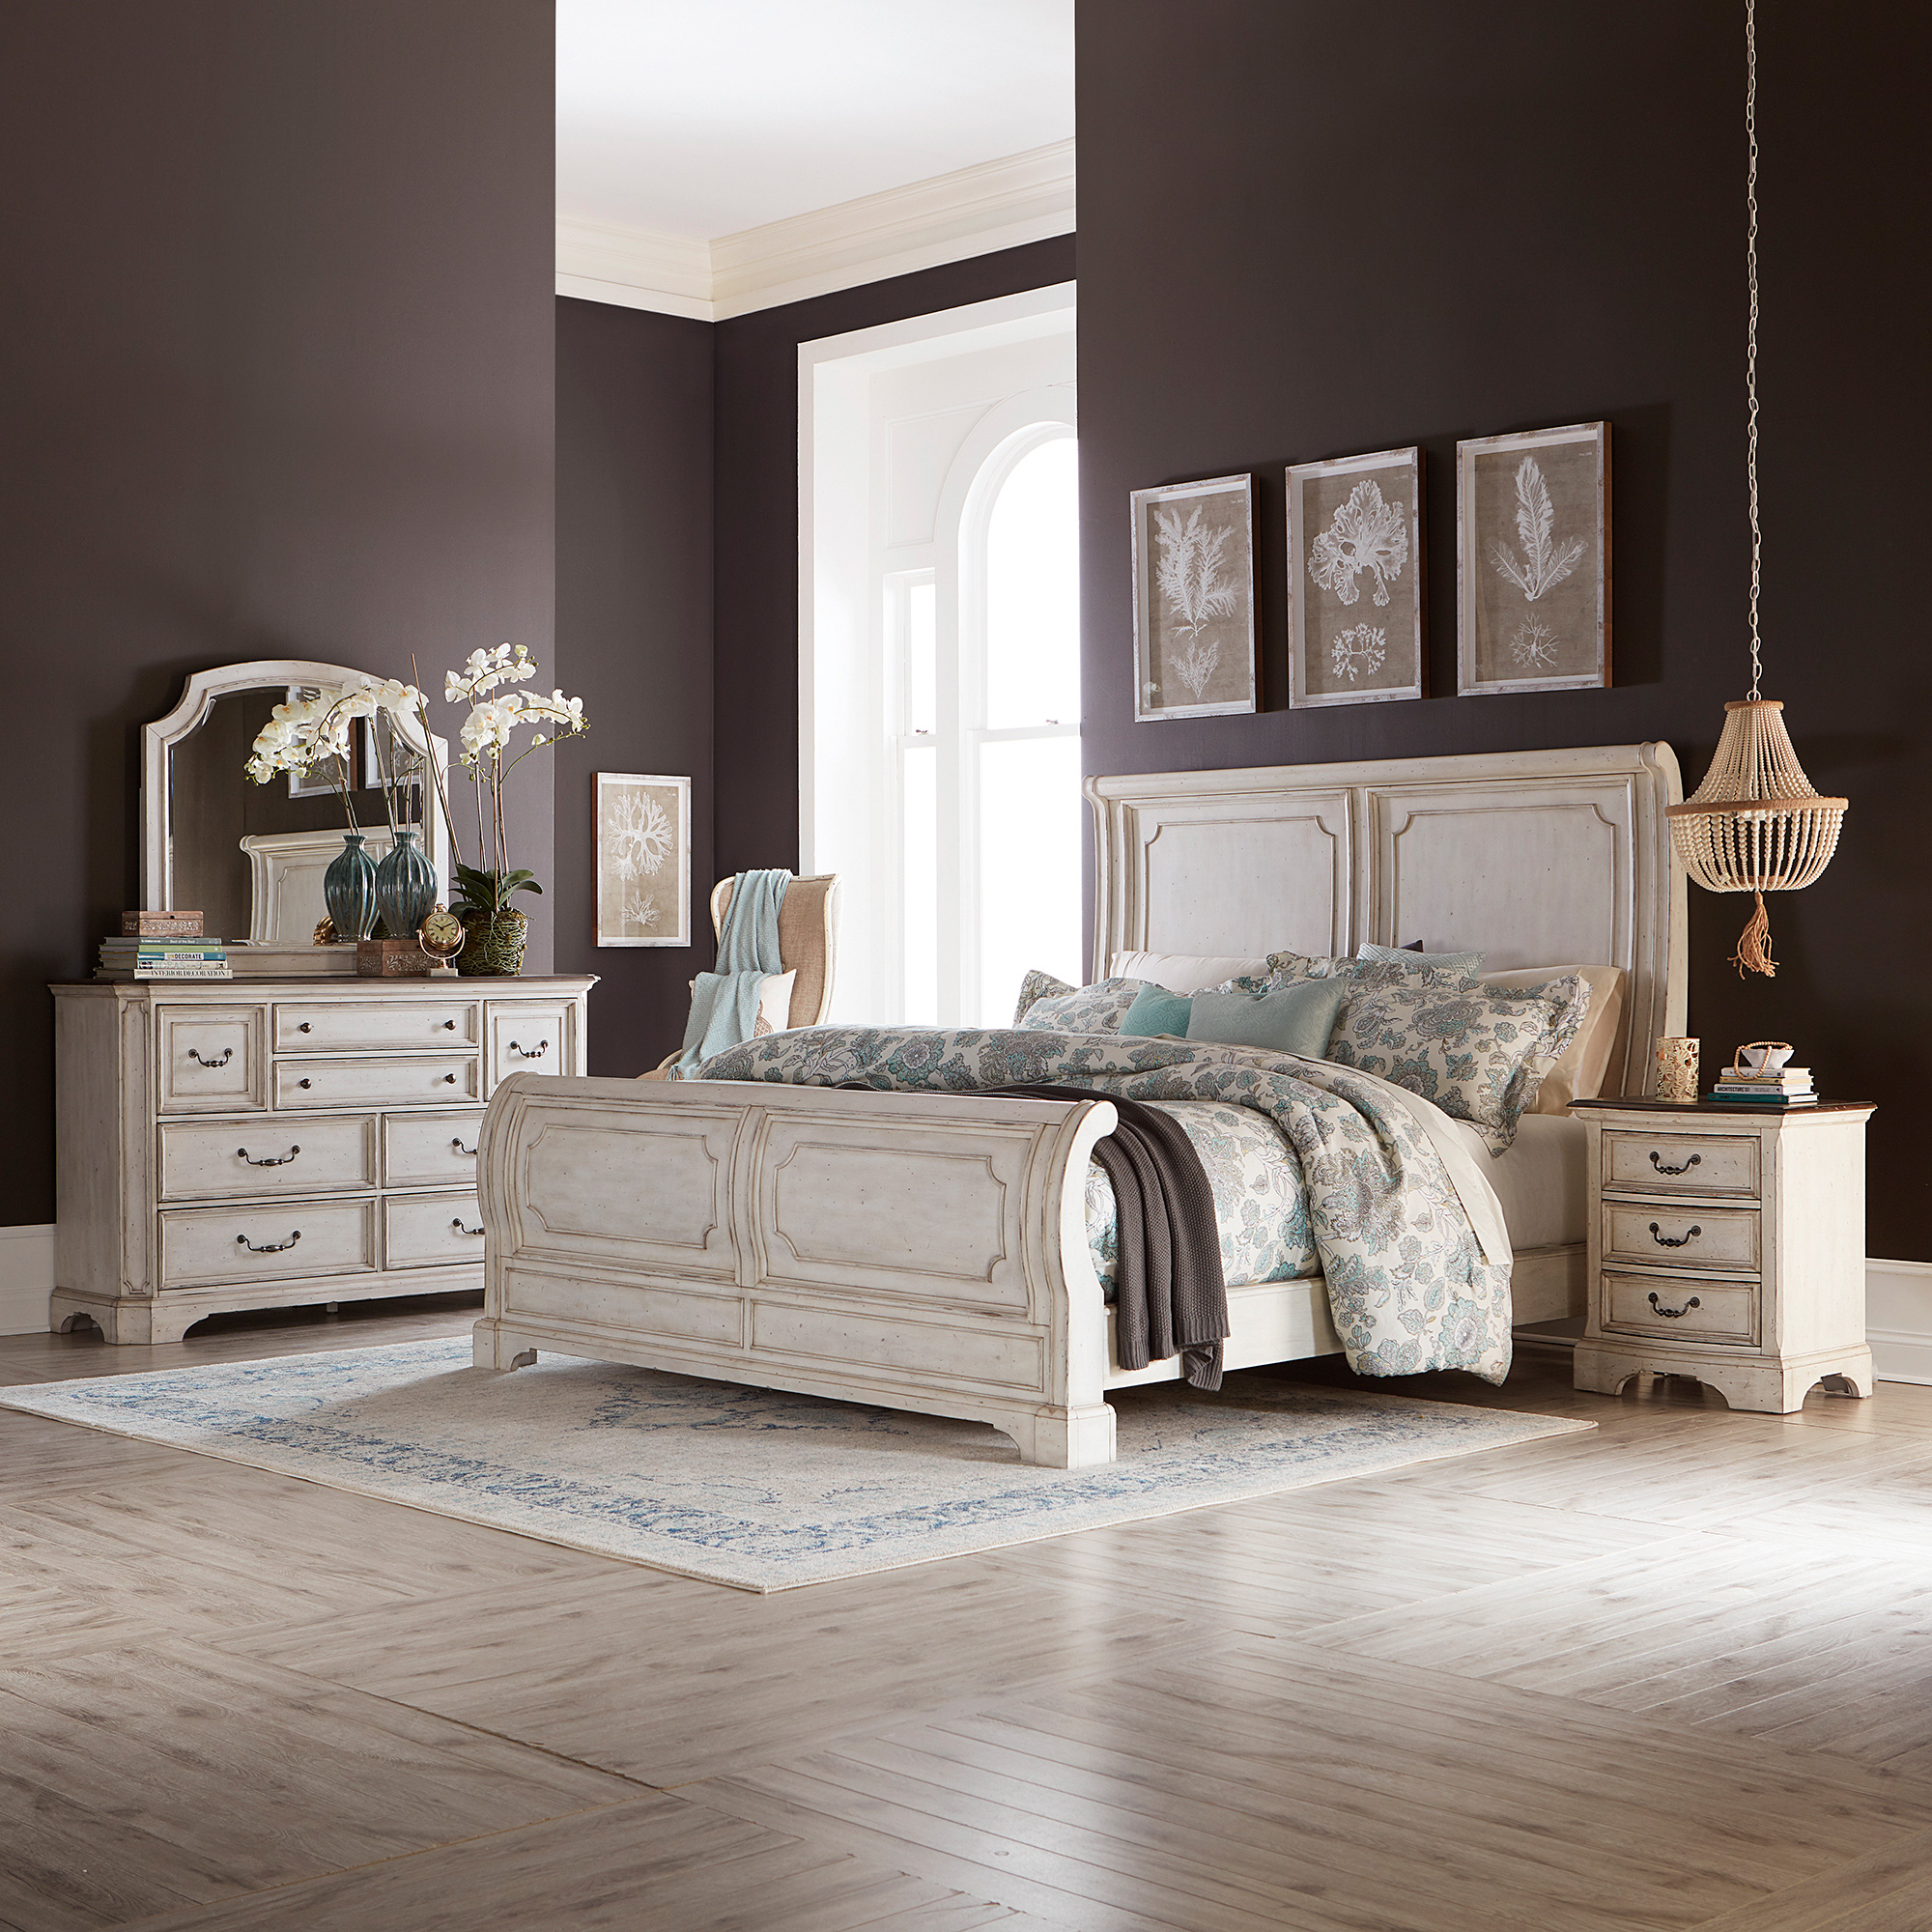 Liberty Furniture | Abbey Road White King 4 Piece Sleigh Bed Package